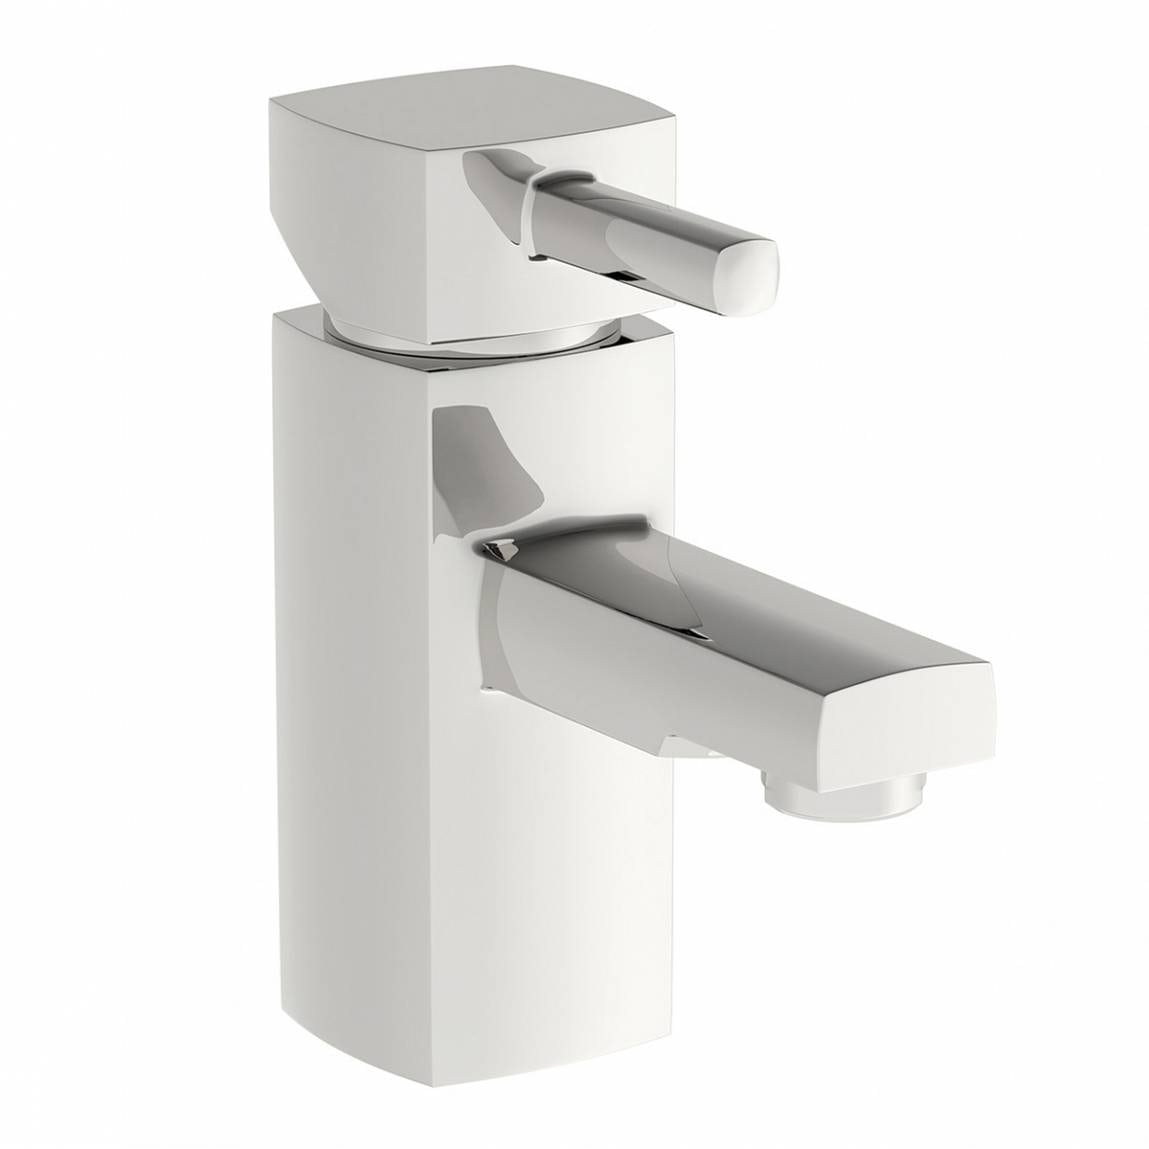 Orchard Derwent basin mixer tap offer pack